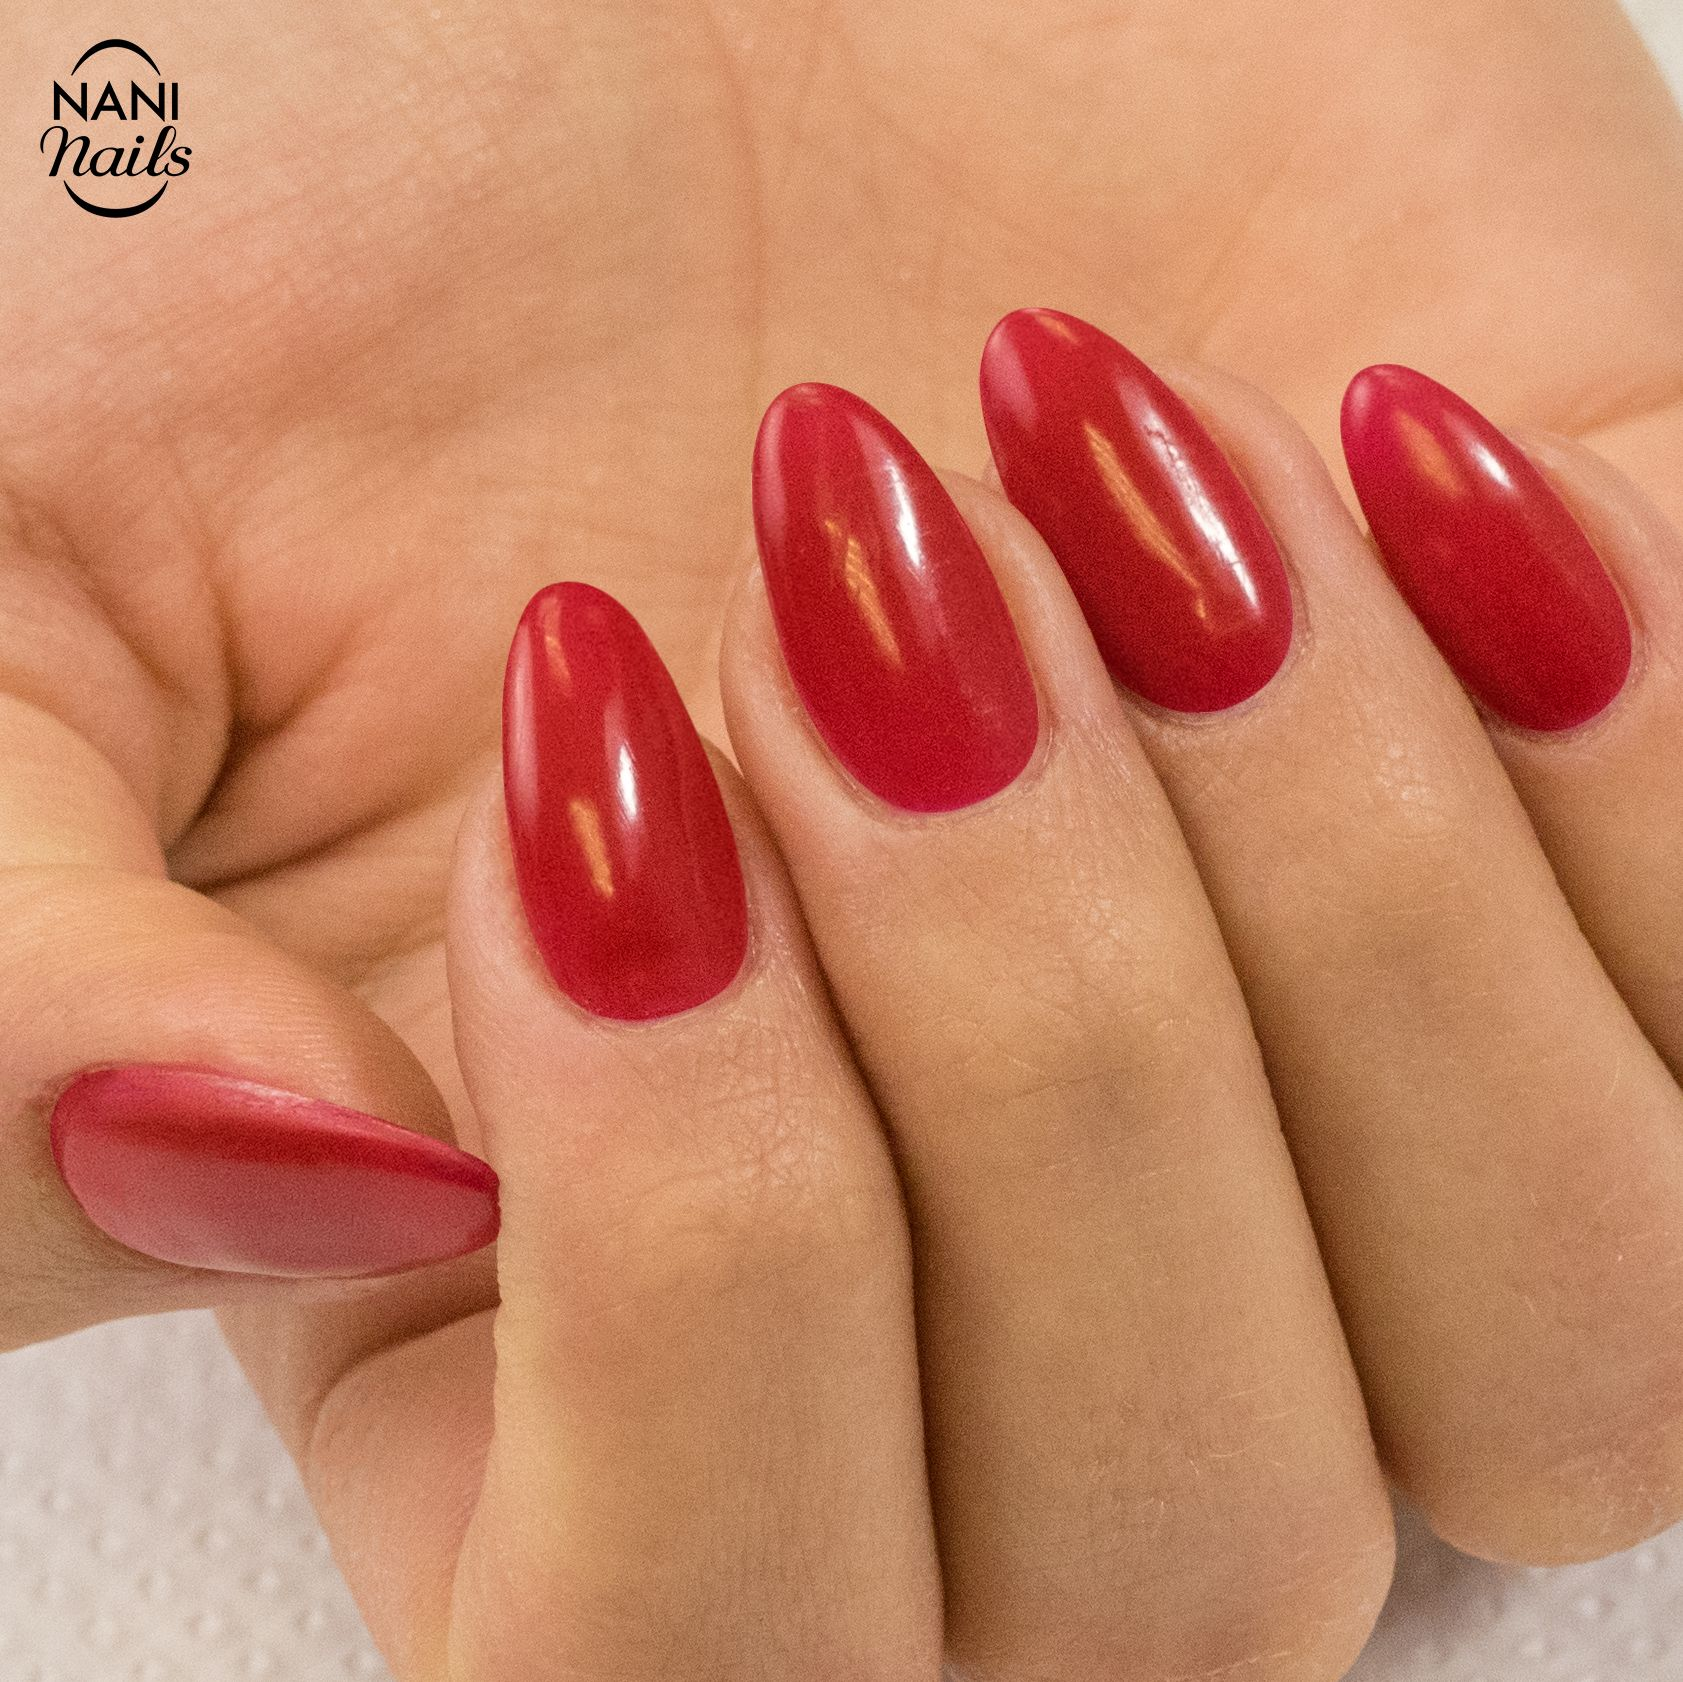 Simple Red Simply Gorgeous Manicure Nails Naildesigns Red Naninails Nails Nail Designs Manicure